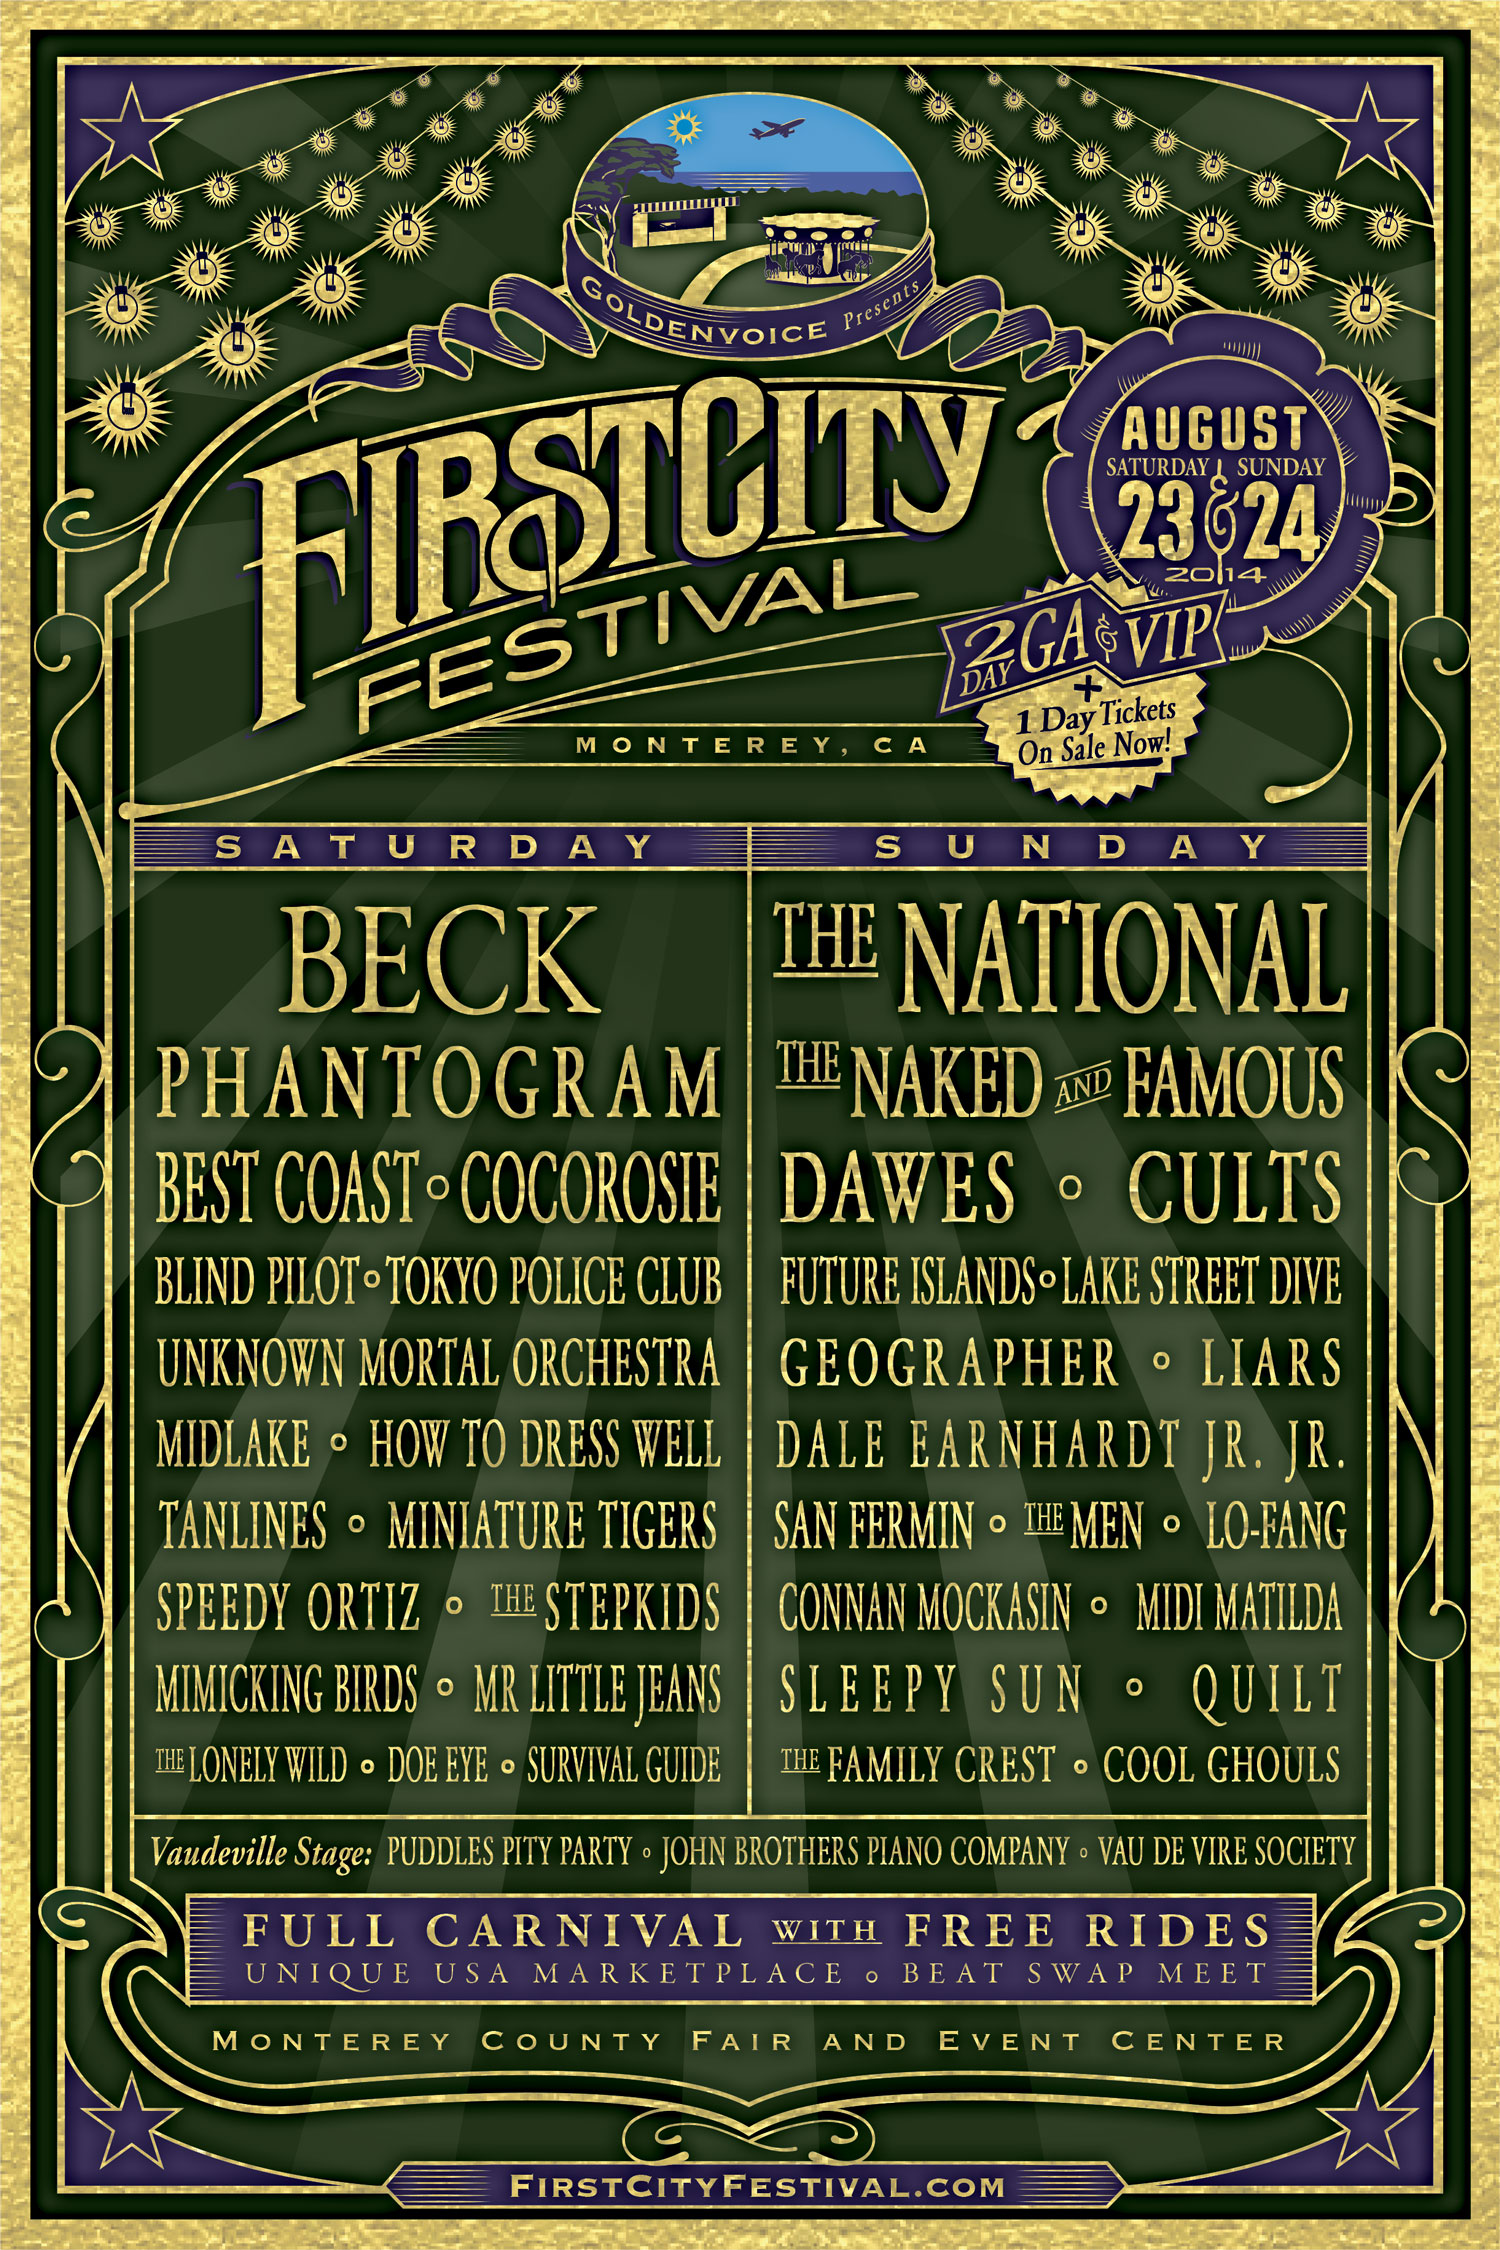 First City Festival returns to Monterey for second edition � Showbams